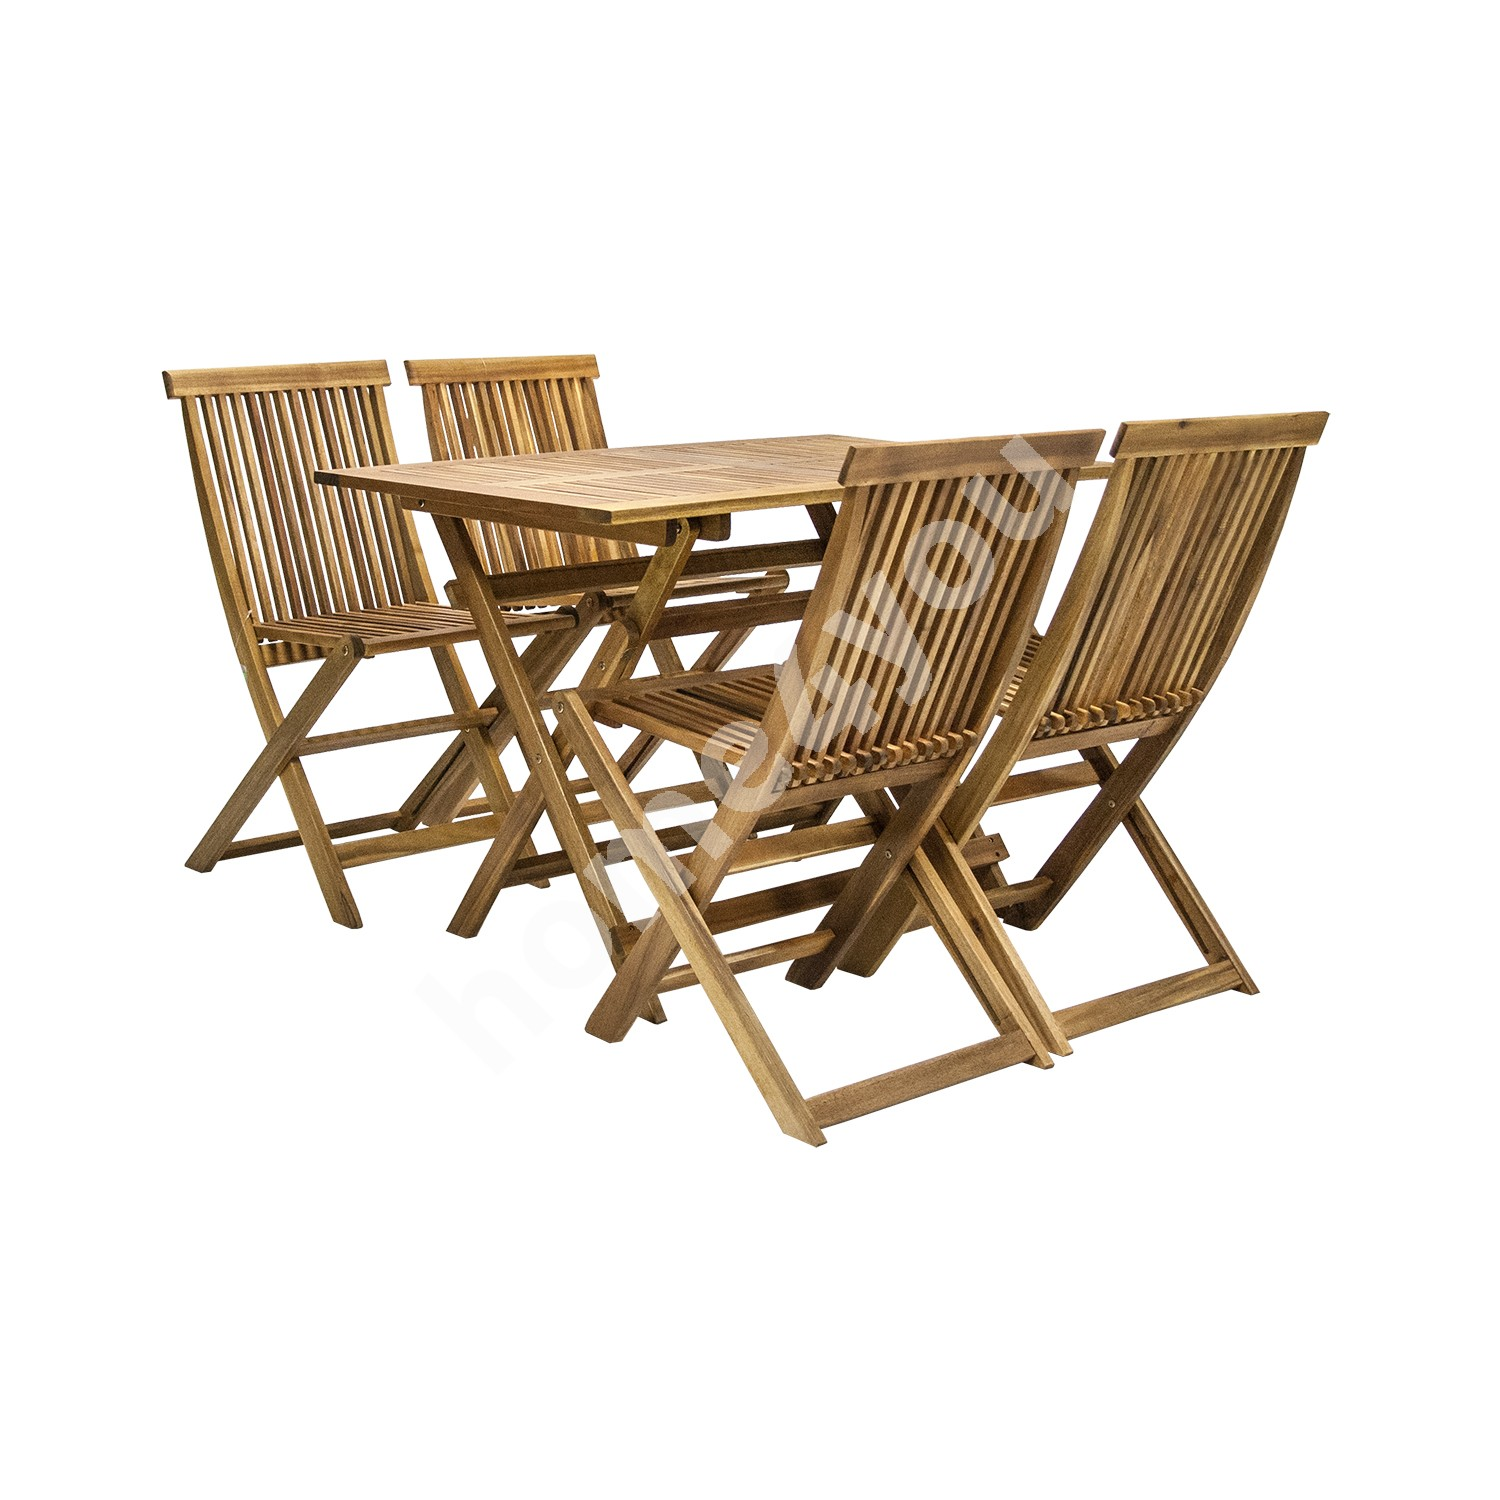 Set FINLAY table and 4 chairs (13181), 110x75xH72cm, foldable, wood: acacia, finish: oiled